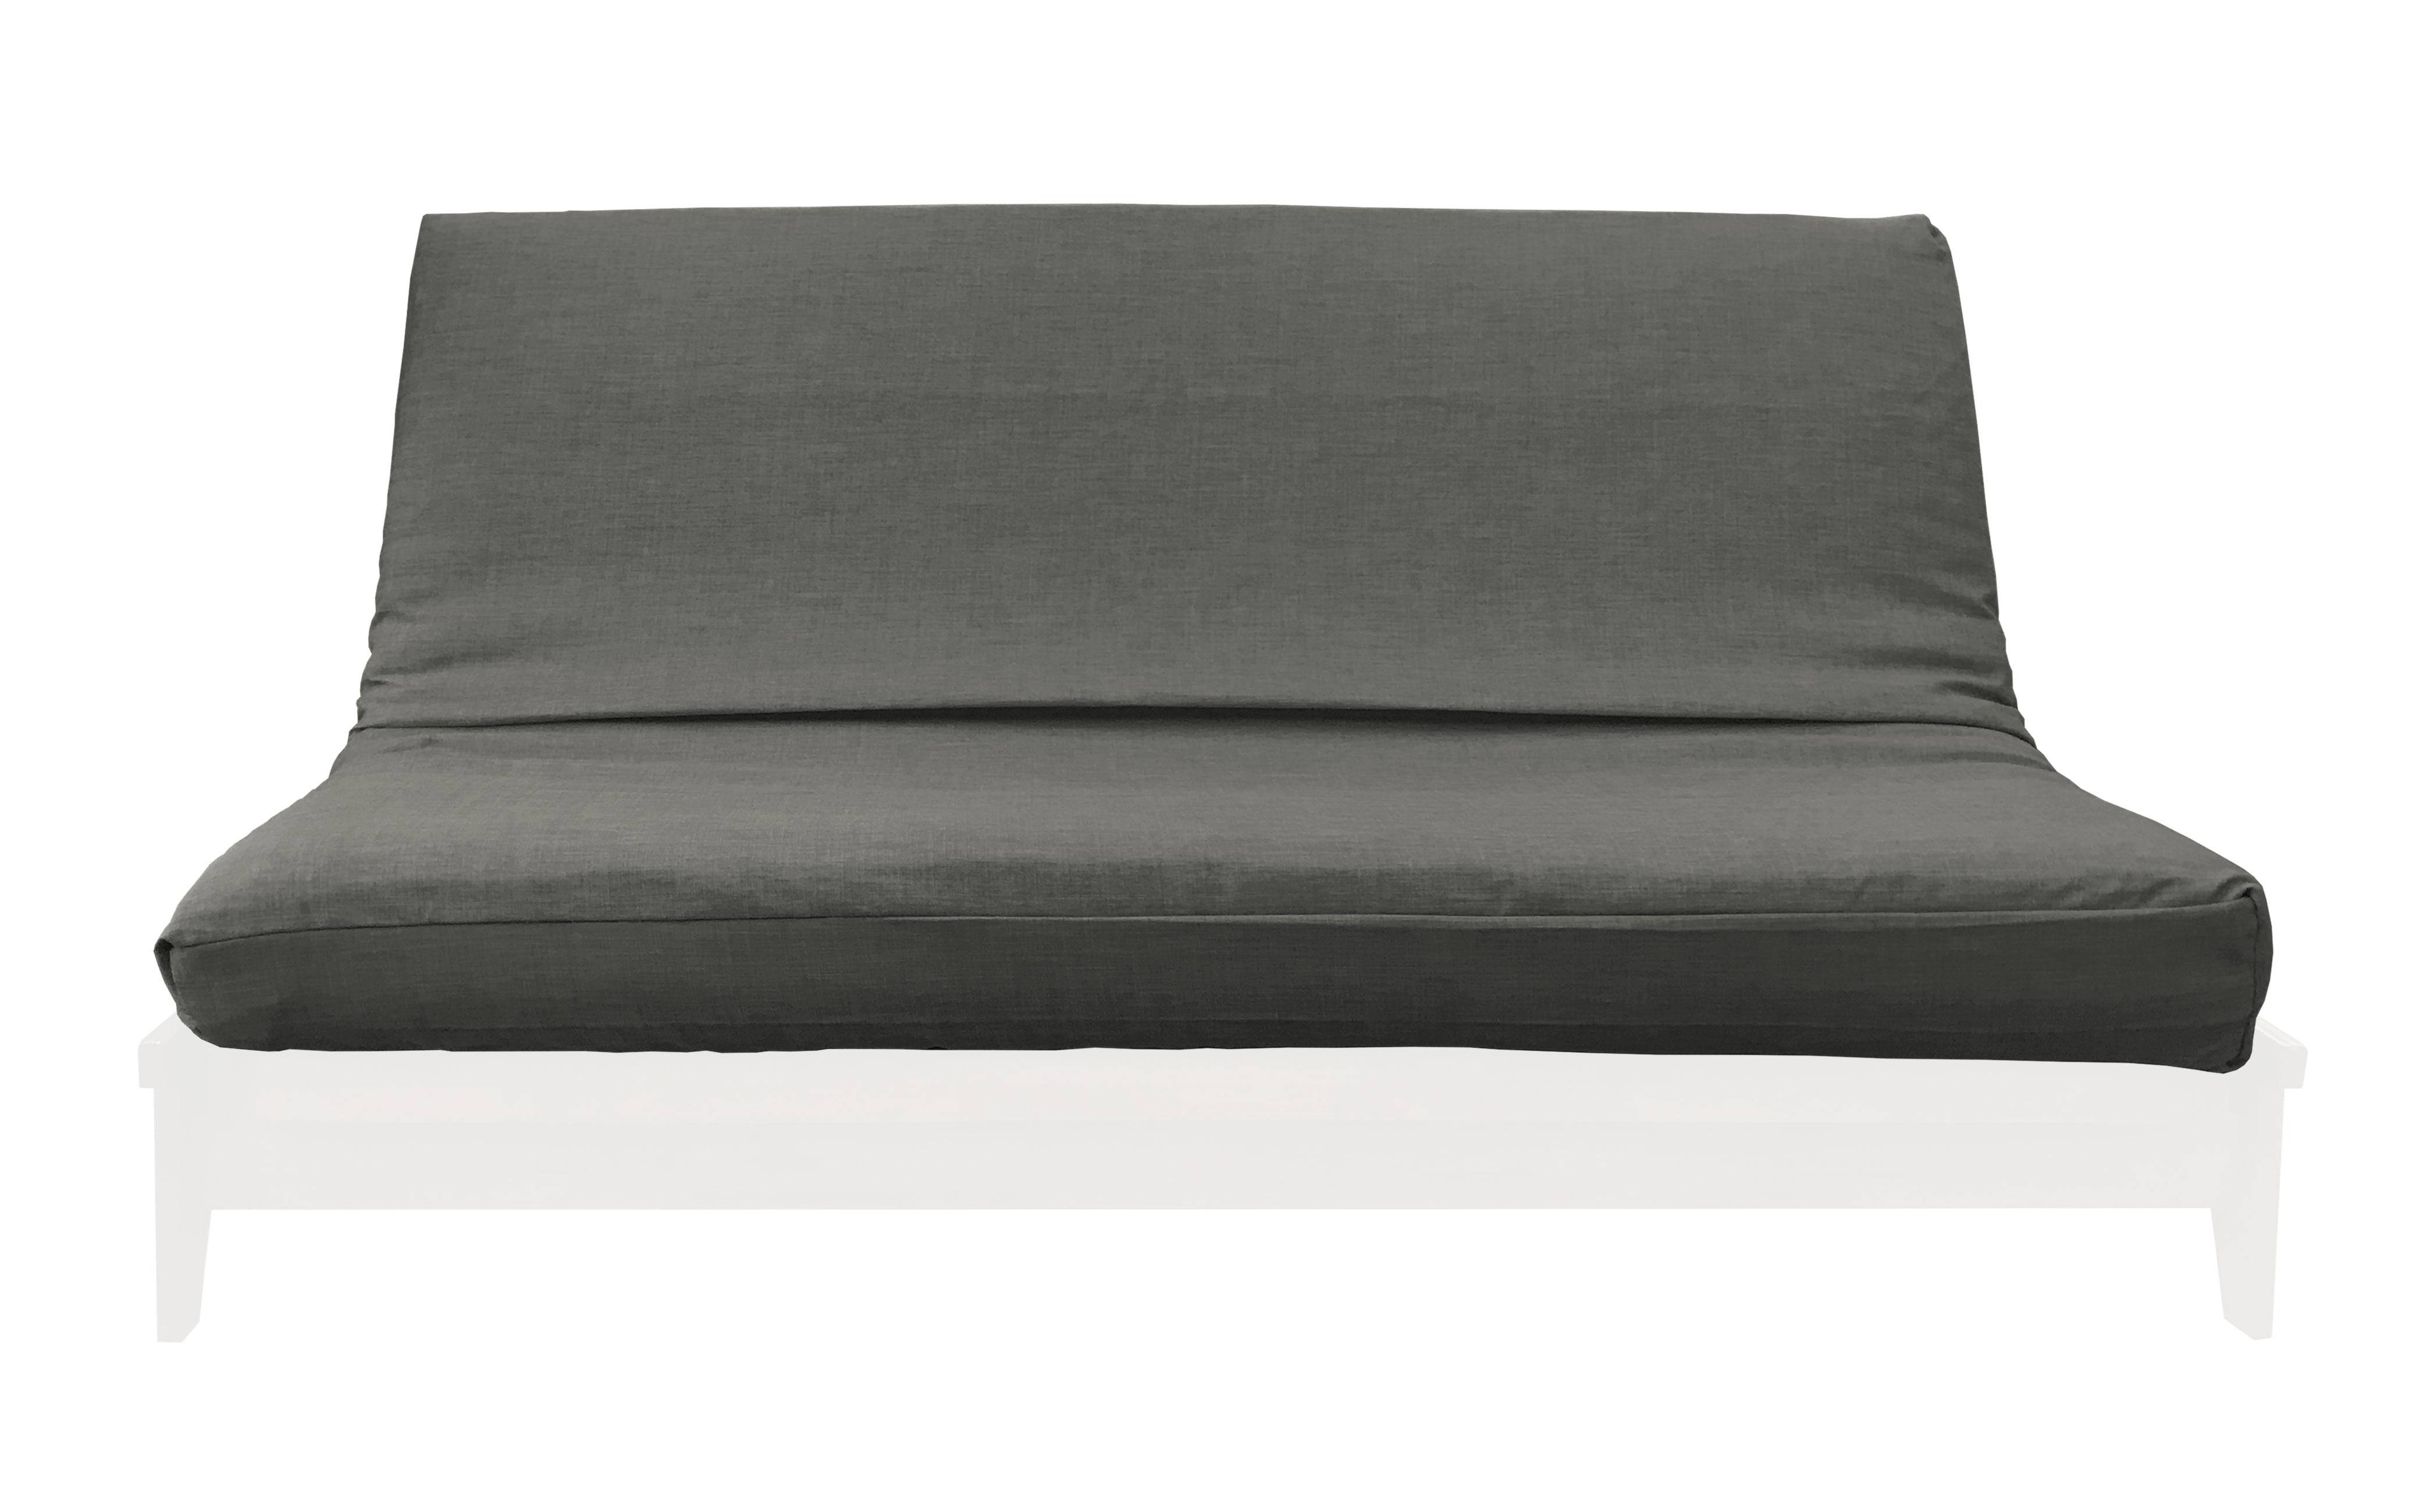 Medley Charcoal Linen Texture Futon Cover By Prestige